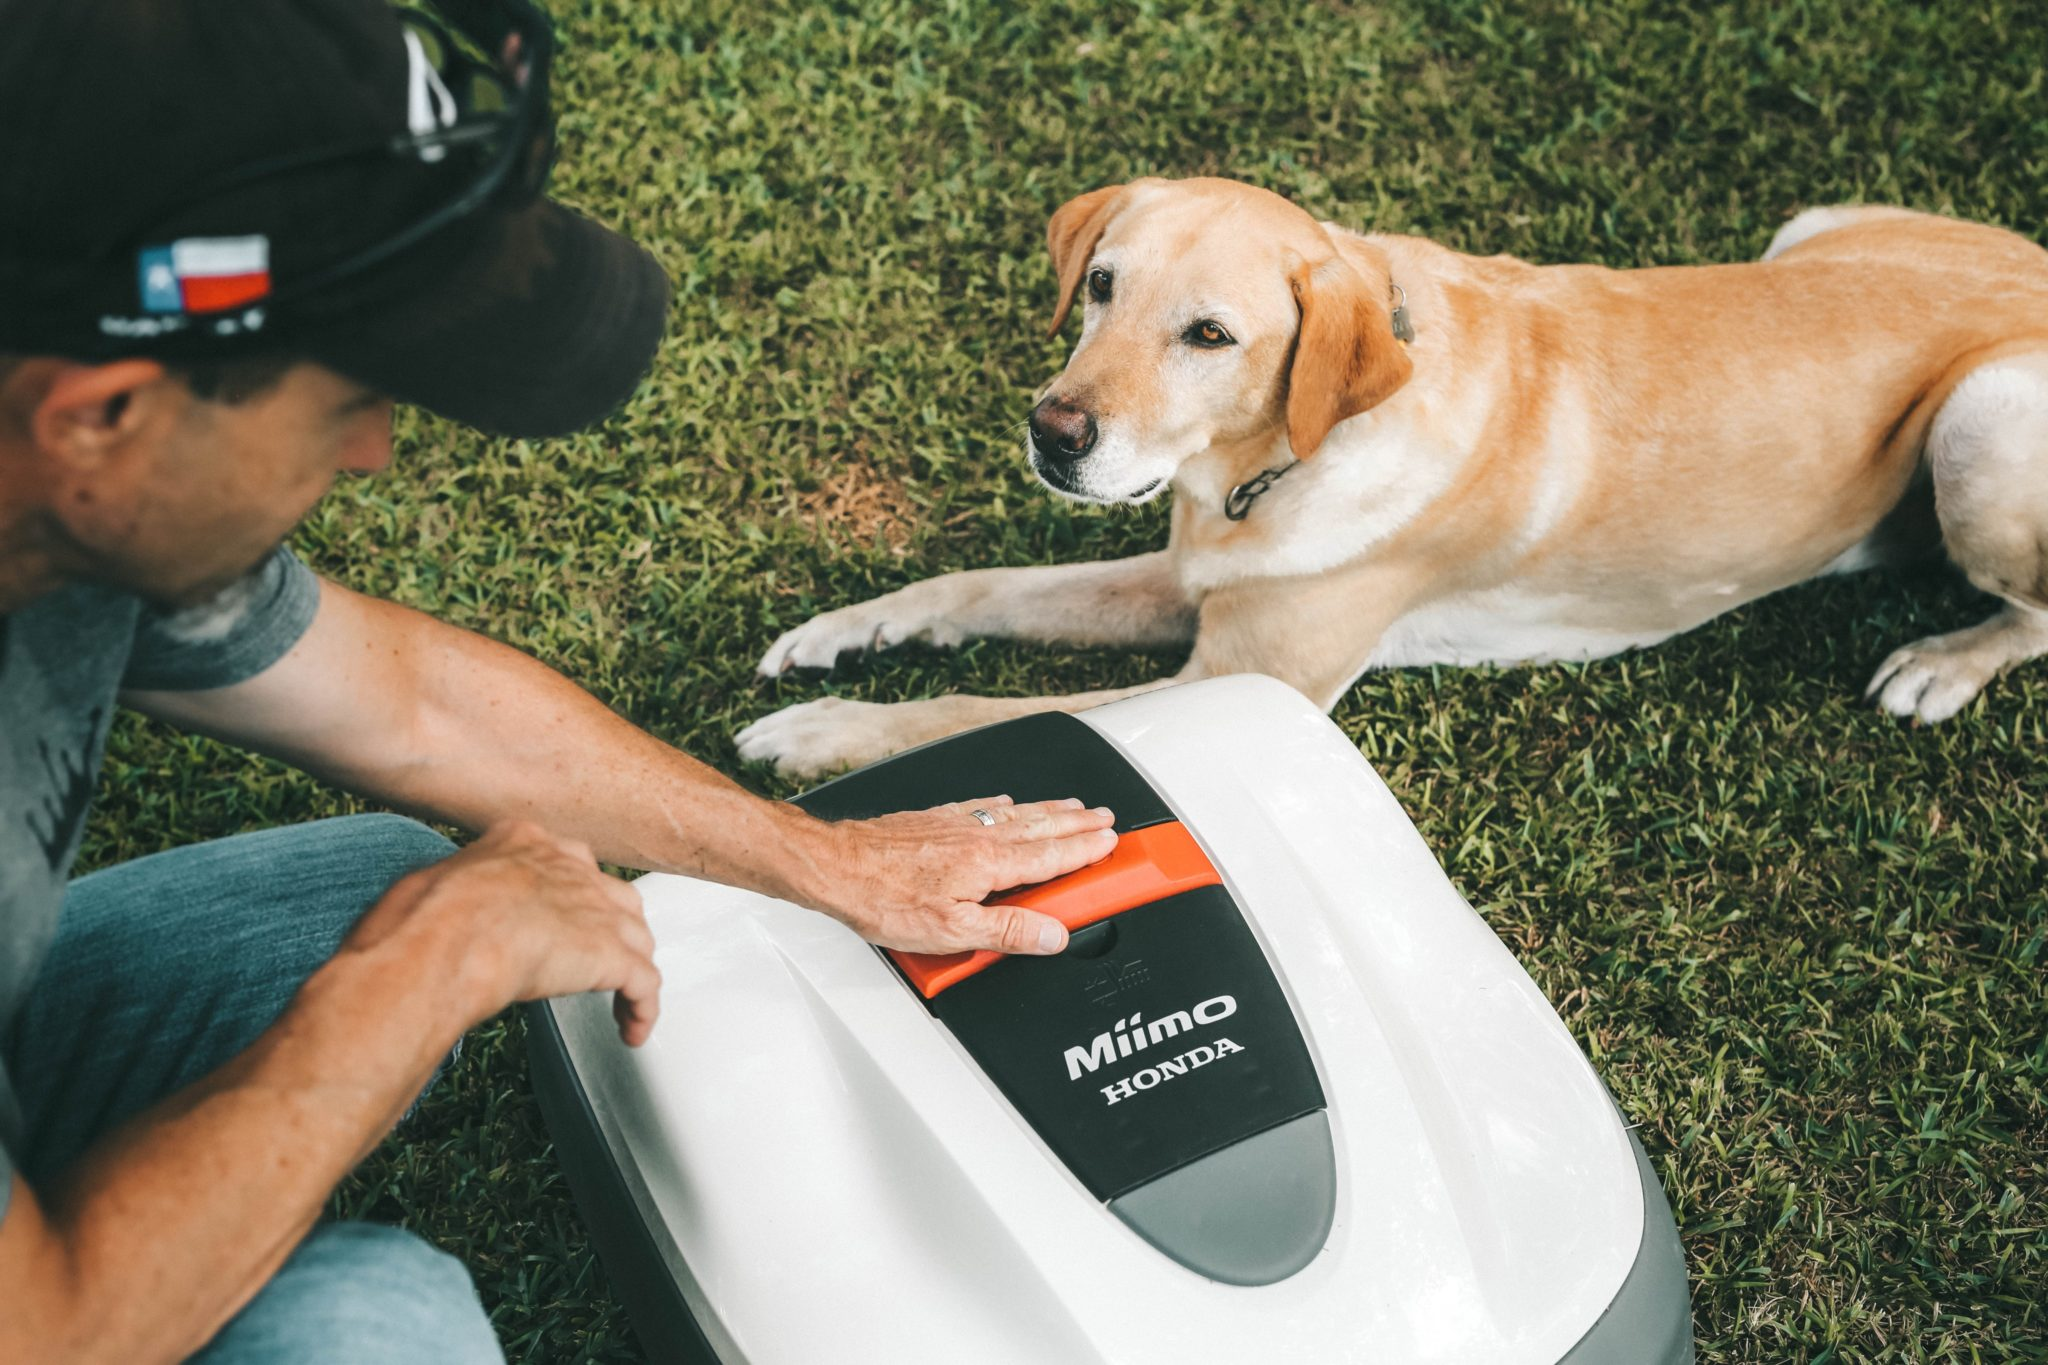 Honda Miimo Robotic Lawn Mower Review by popular Austin lifestyle blog, Dressed to Kill: image of a man and his golden lap next to the Honda Miimo Robotic Lawn Mower.